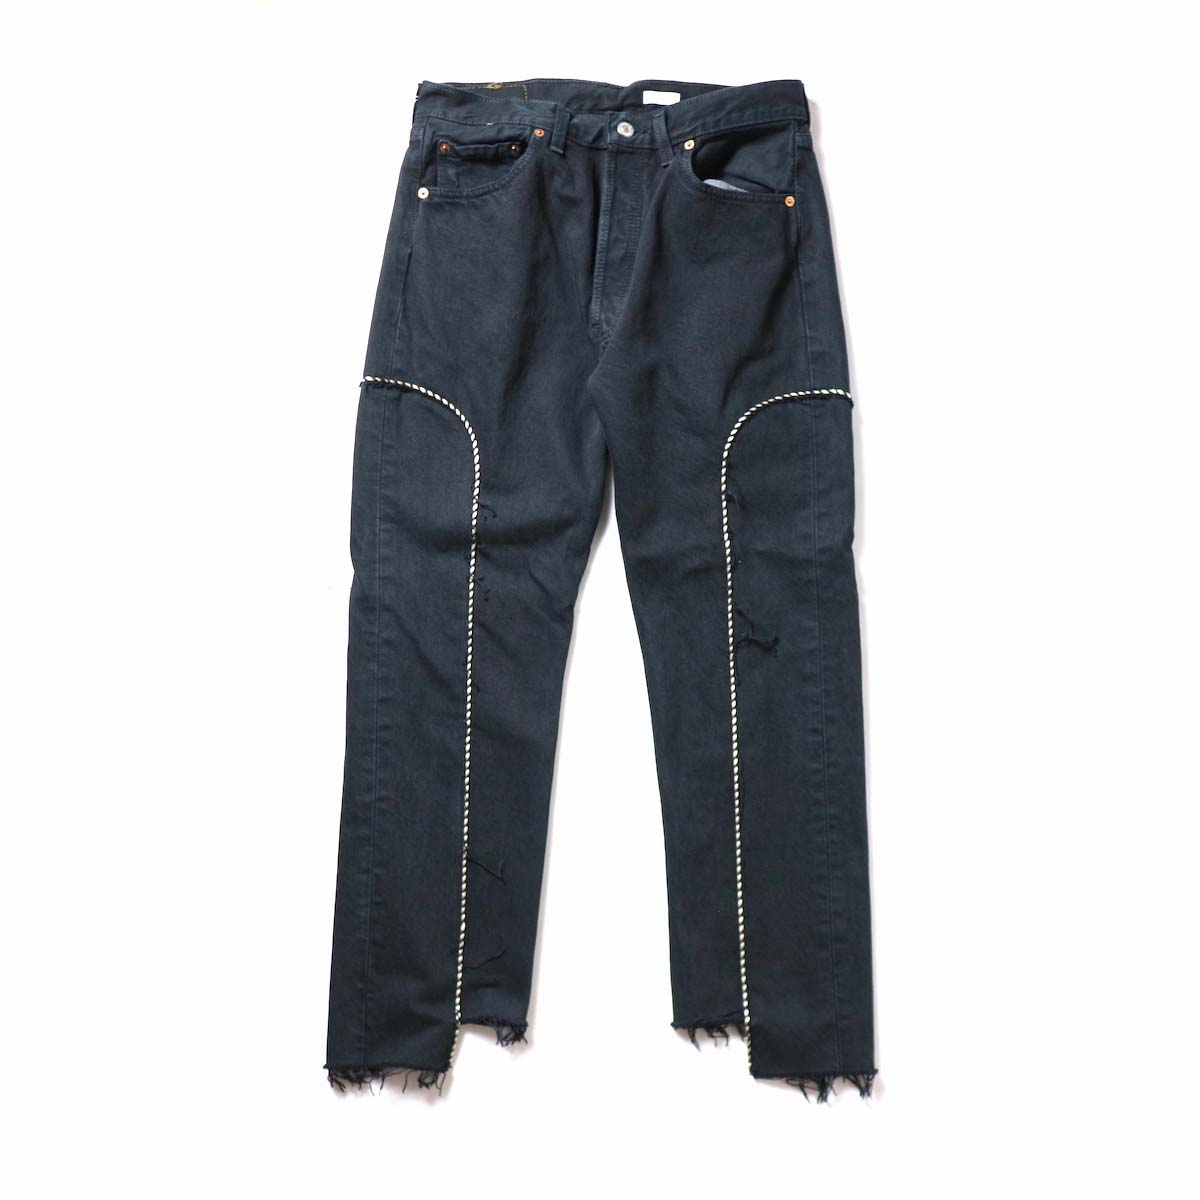 OLD PARK / Western Jeans Black (Msize-F)正面